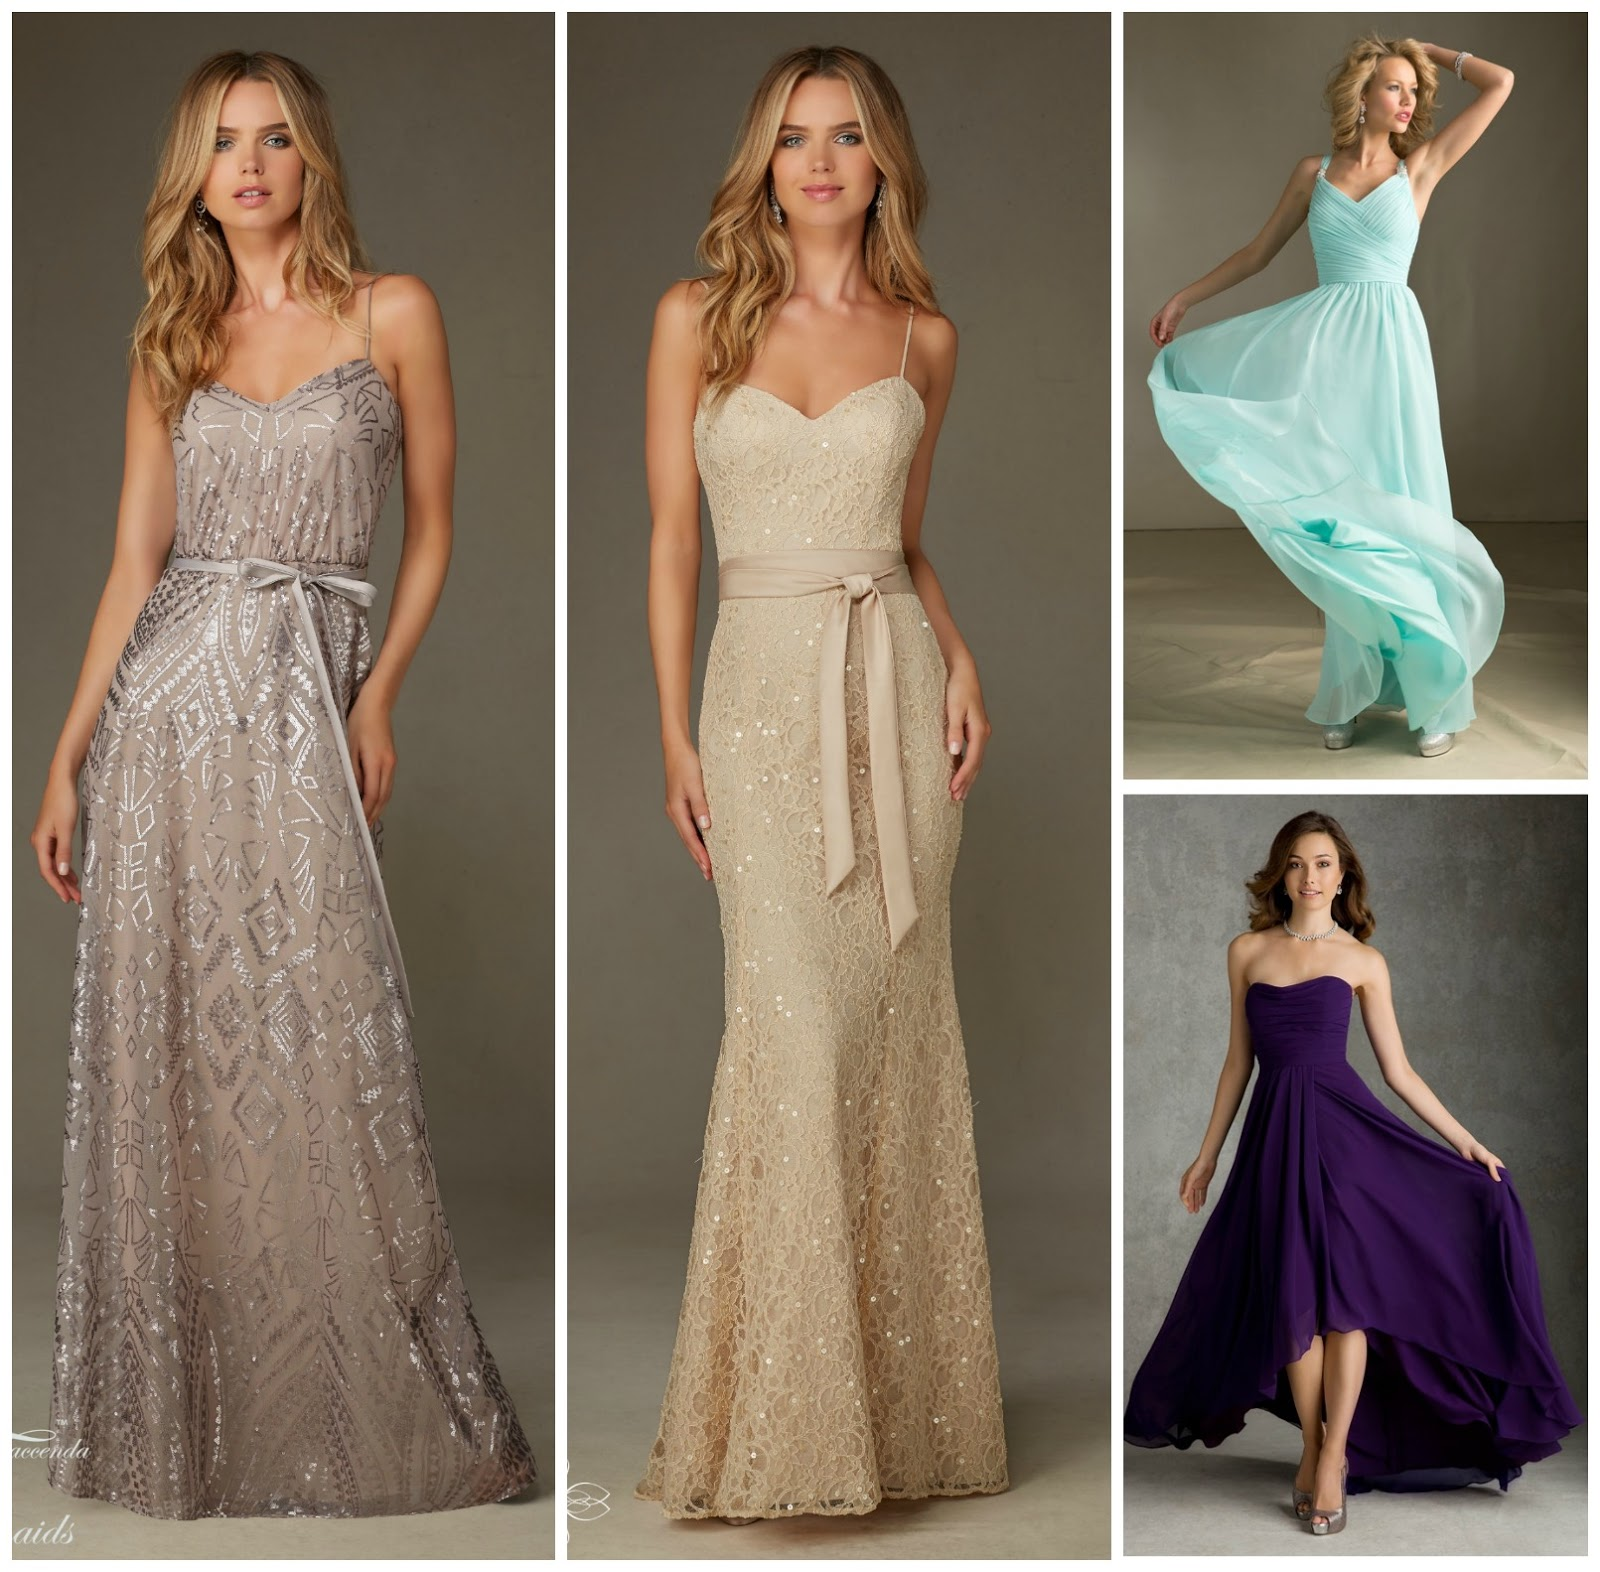 Brides of america online store brides of america fashions for bridesmaid dresses ombrellifo Images